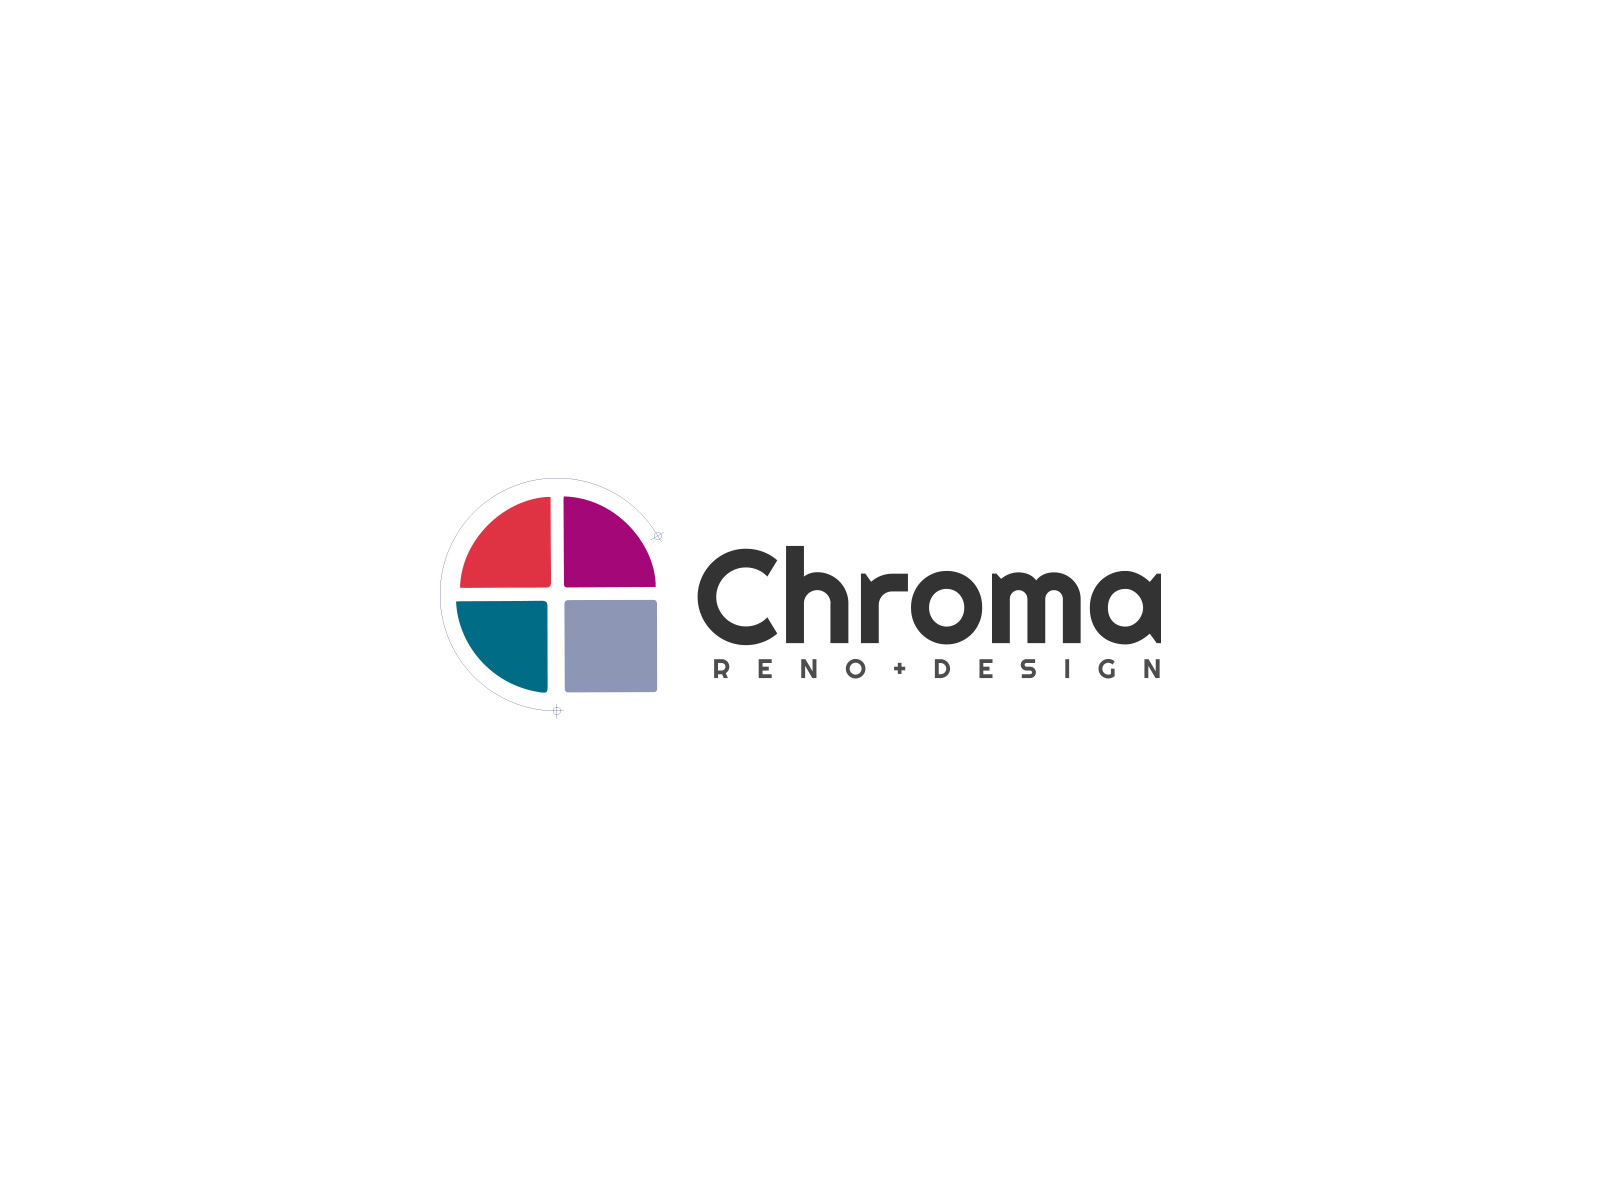 Logo Design by olii - Entry No. 164 in the Logo Design Contest Inspiring Logo Design for Chroma Reno+Design.